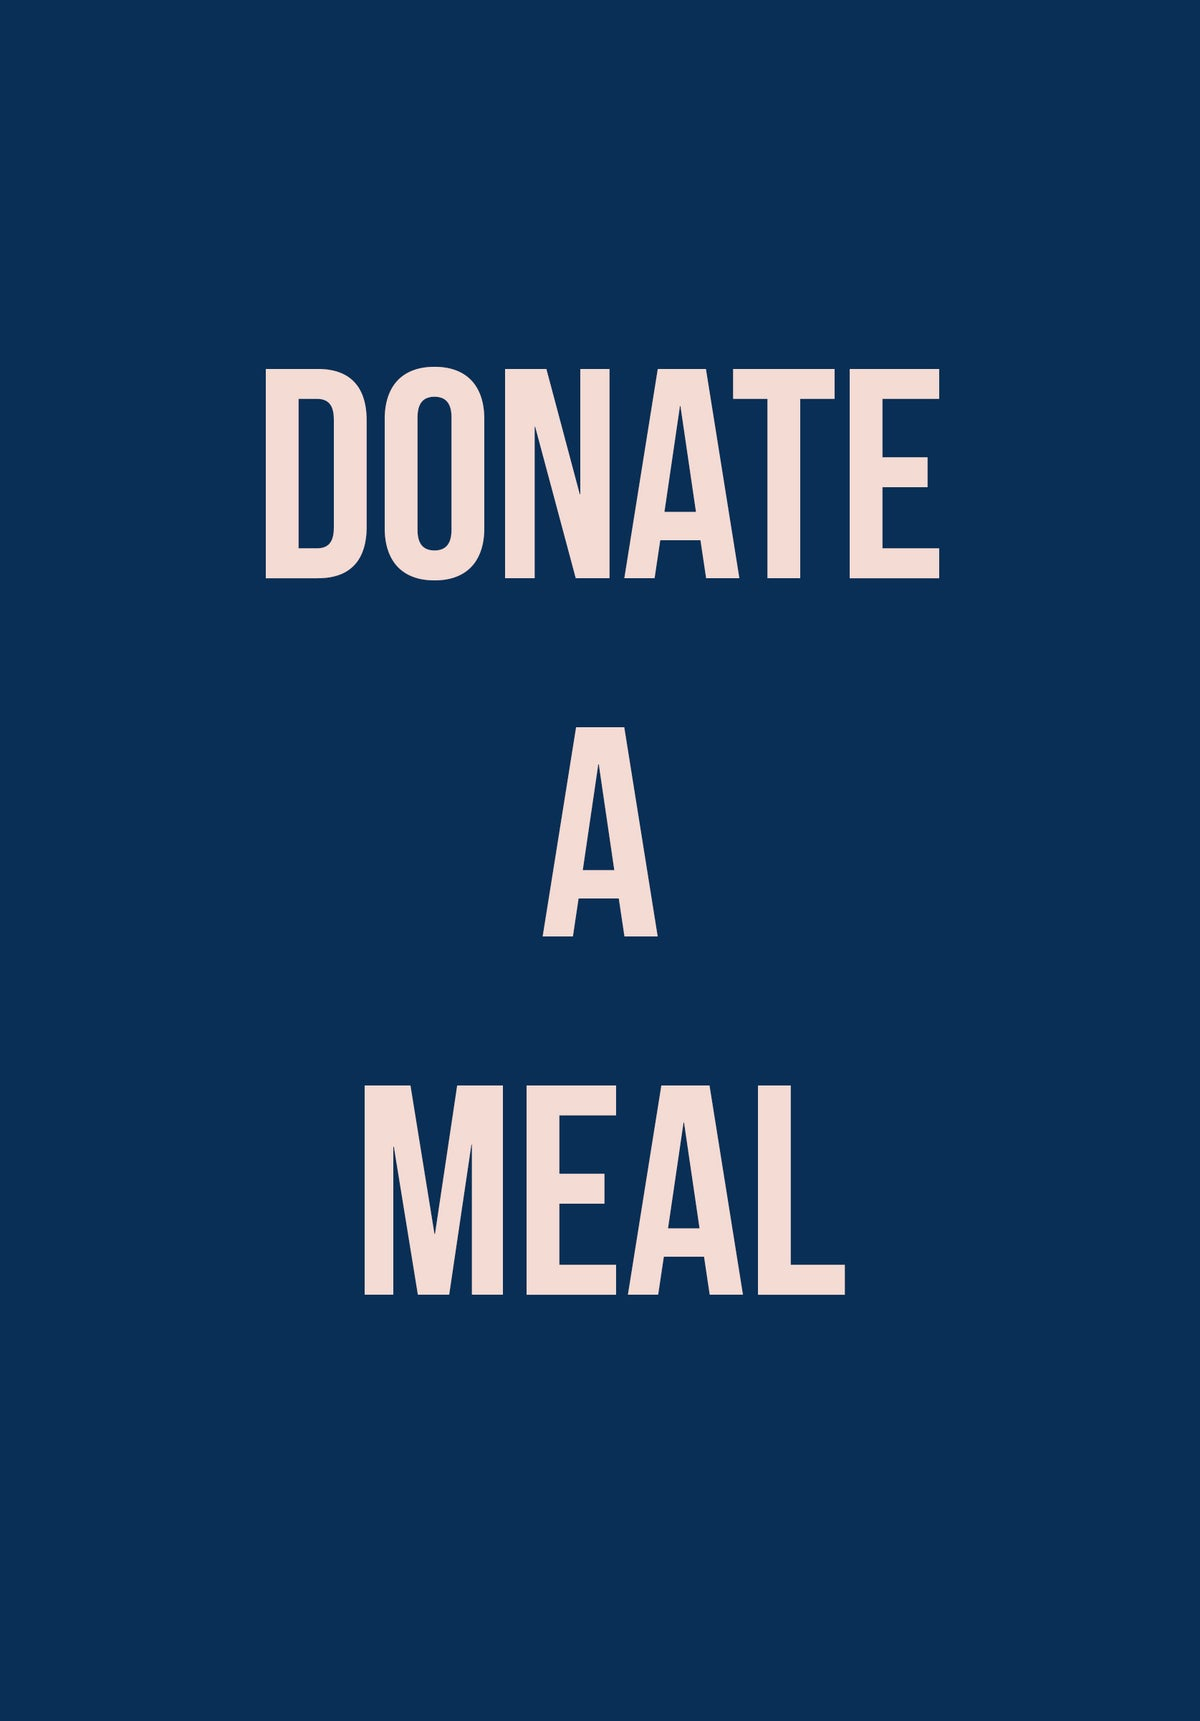 Image of Donate a Meal